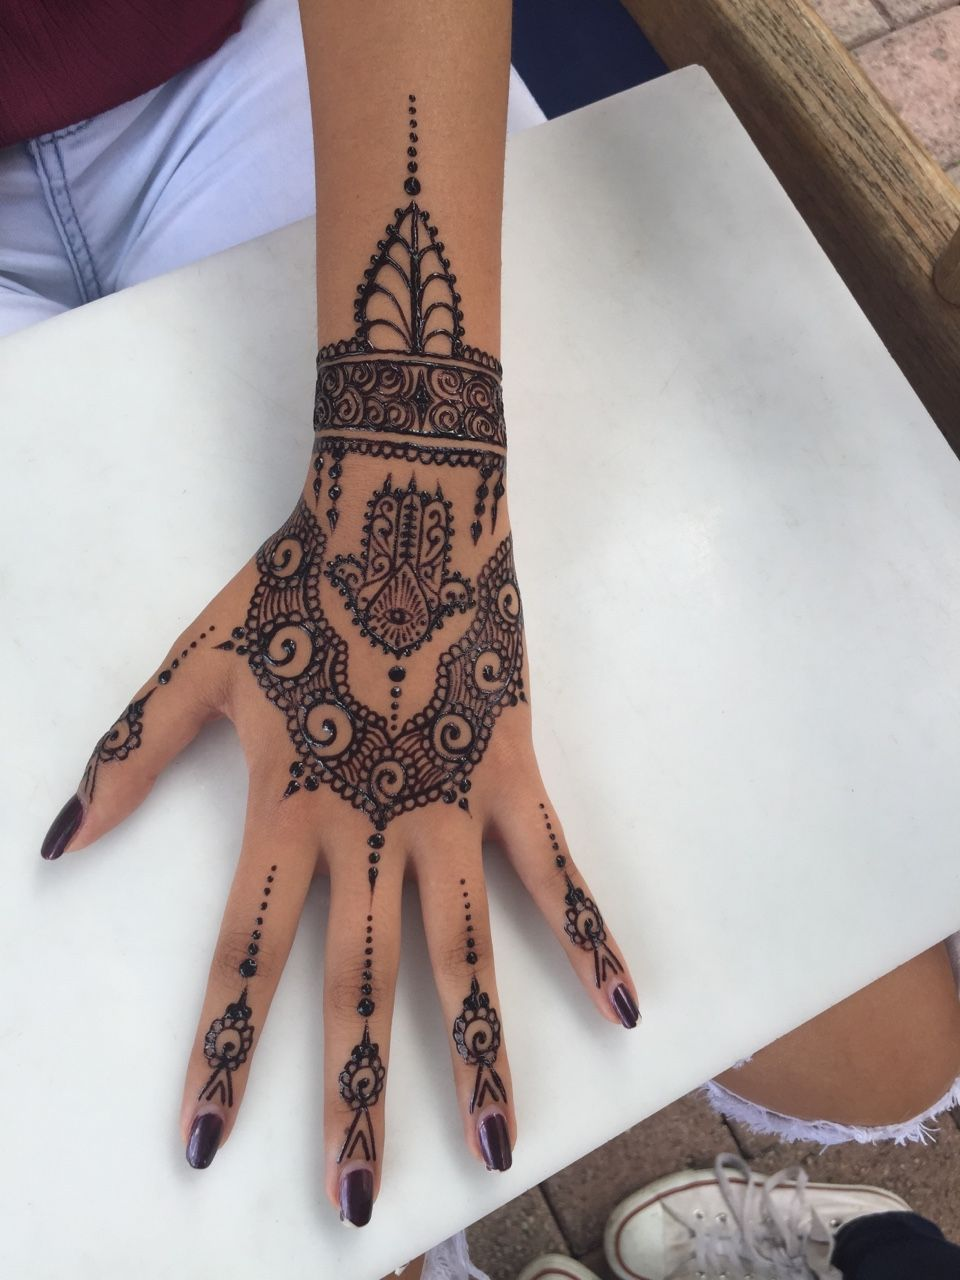 Beautiful Henna Tattoo Designs For Your Wrist: Http://www.theluxeguide.com